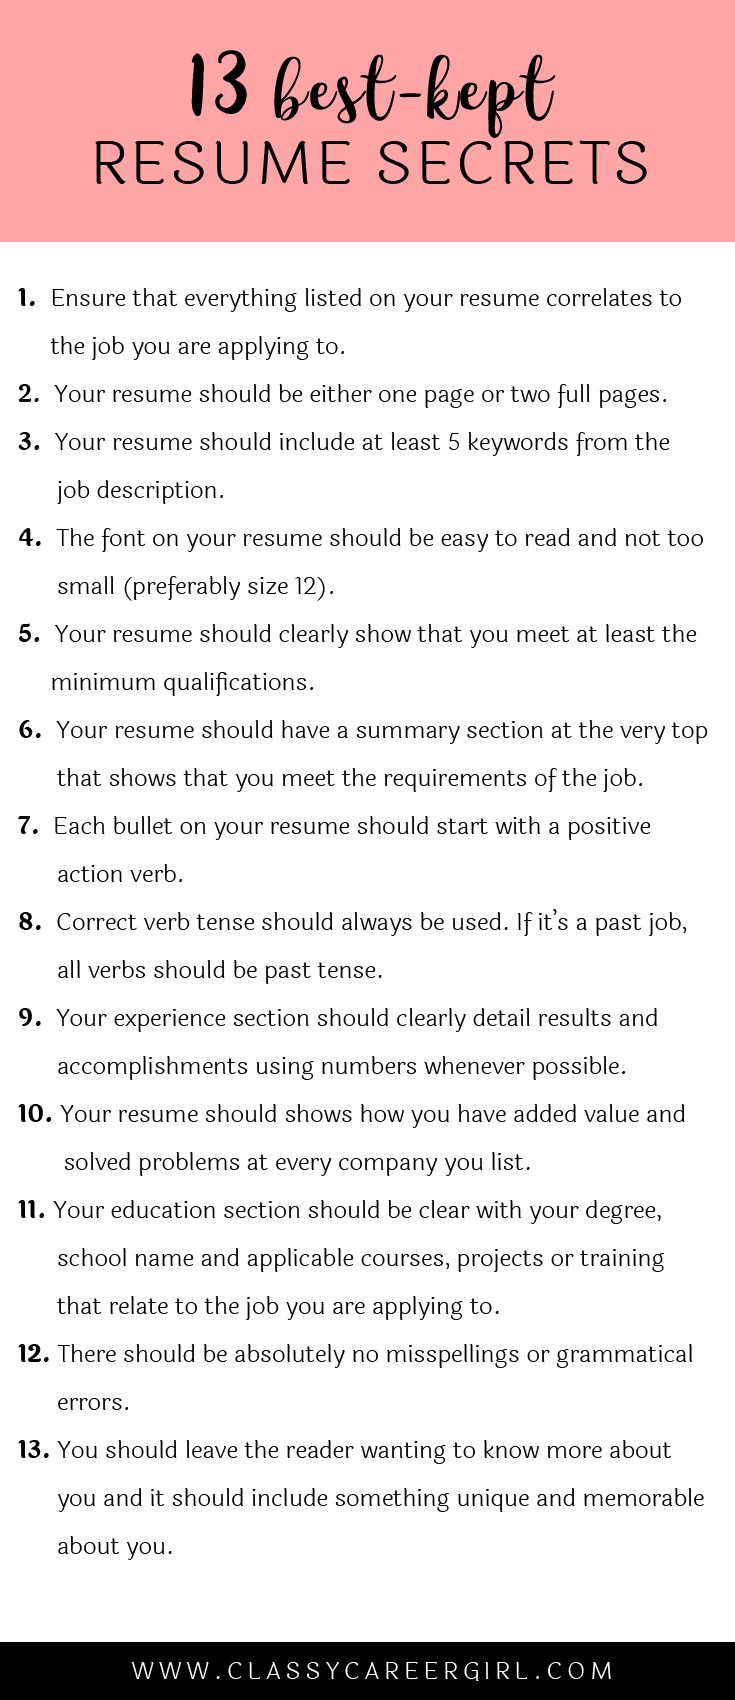 Opposenewapstandardsus  Prepossessing  Ideas About Resume On Pinterest  Cv Format Resume Cv And  With Fetching Some Hiring Managers Will Toss Your Resume Out If You Dont Know These  With Endearing Resume Double Major Also Dishwasher Resume Sample In Addition Resume Template For Internship And Resume Volunteer Work As Well As What To Write For Skills On Resume Additionally Resume Reference Page Example From Pinterestcom With Opposenewapstandardsus  Fetching  Ideas About Resume On Pinterest  Cv Format Resume Cv And  With Endearing Some Hiring Managers Will Toss Your Resume Out If You Dont Know These  And Prepossessing Resume Double Major Also Dishwasher Resume Sample In Addition Resume Template For Internship From Pinterestcom